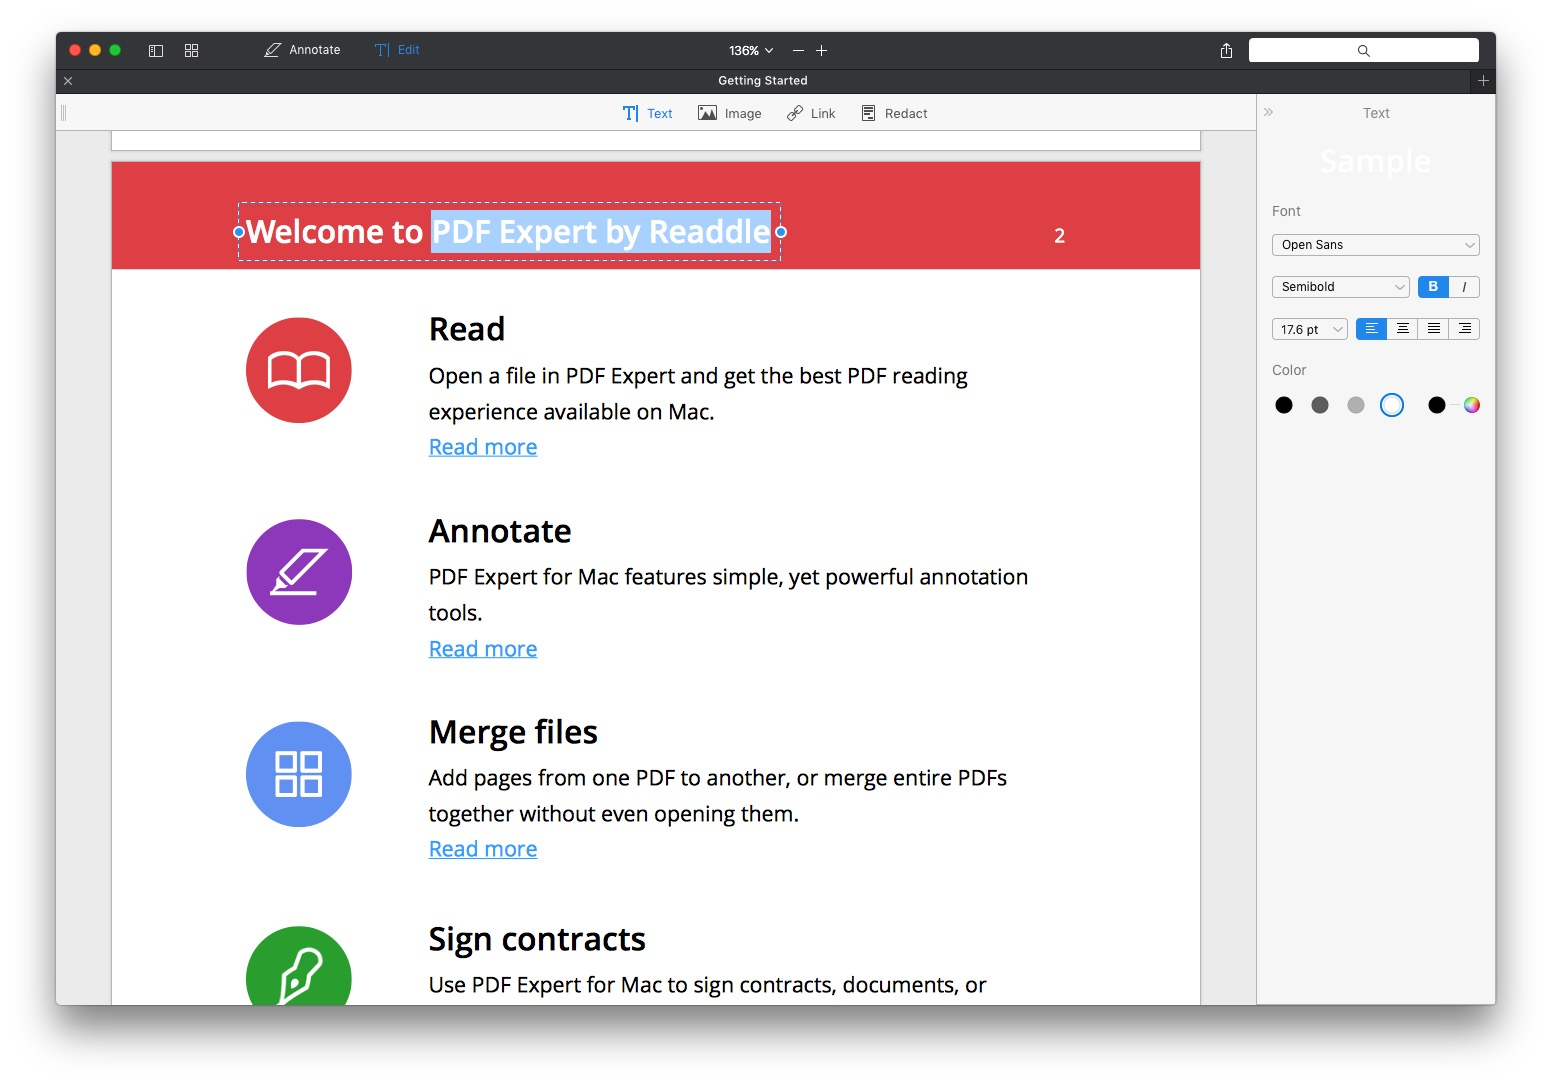 PDF Expert 2 For Mac Adds Powerful Editing Features